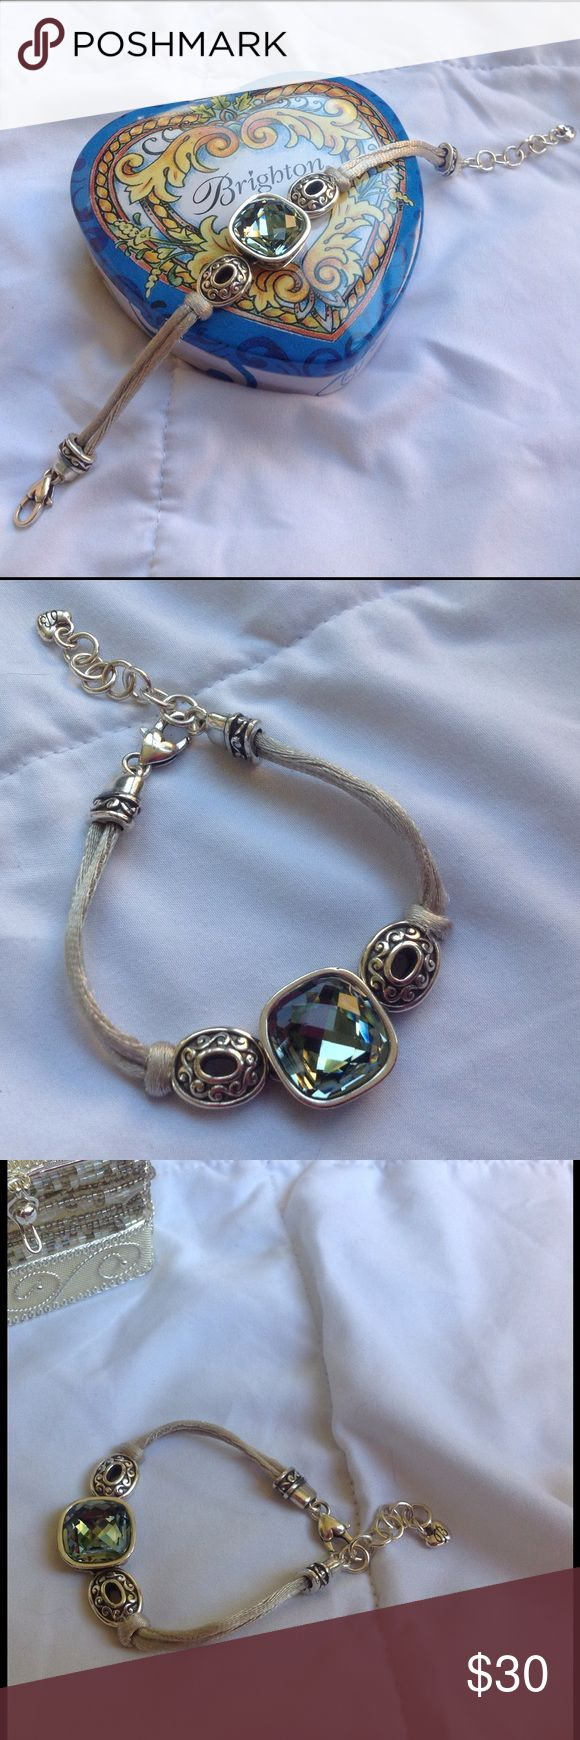 🌟RETIRED Brighton Corded Swarovski Bracelet 🌟 A Retired Venus Design, 7 inches of doubled lite gray soft satin cords showing off this magnificent Swarovski Crystal. This Brighton design Bracelet showcases the Crystal which is centered & glows a mirrored effect of color. Encased in silver & silver hardware as well. Add. Chain for added length. This Retired design is in Perfect Condition. Pic.#4 shown w/matching necklace if you're interested in the set. Ask any ?'s No tarnishing or flaws…